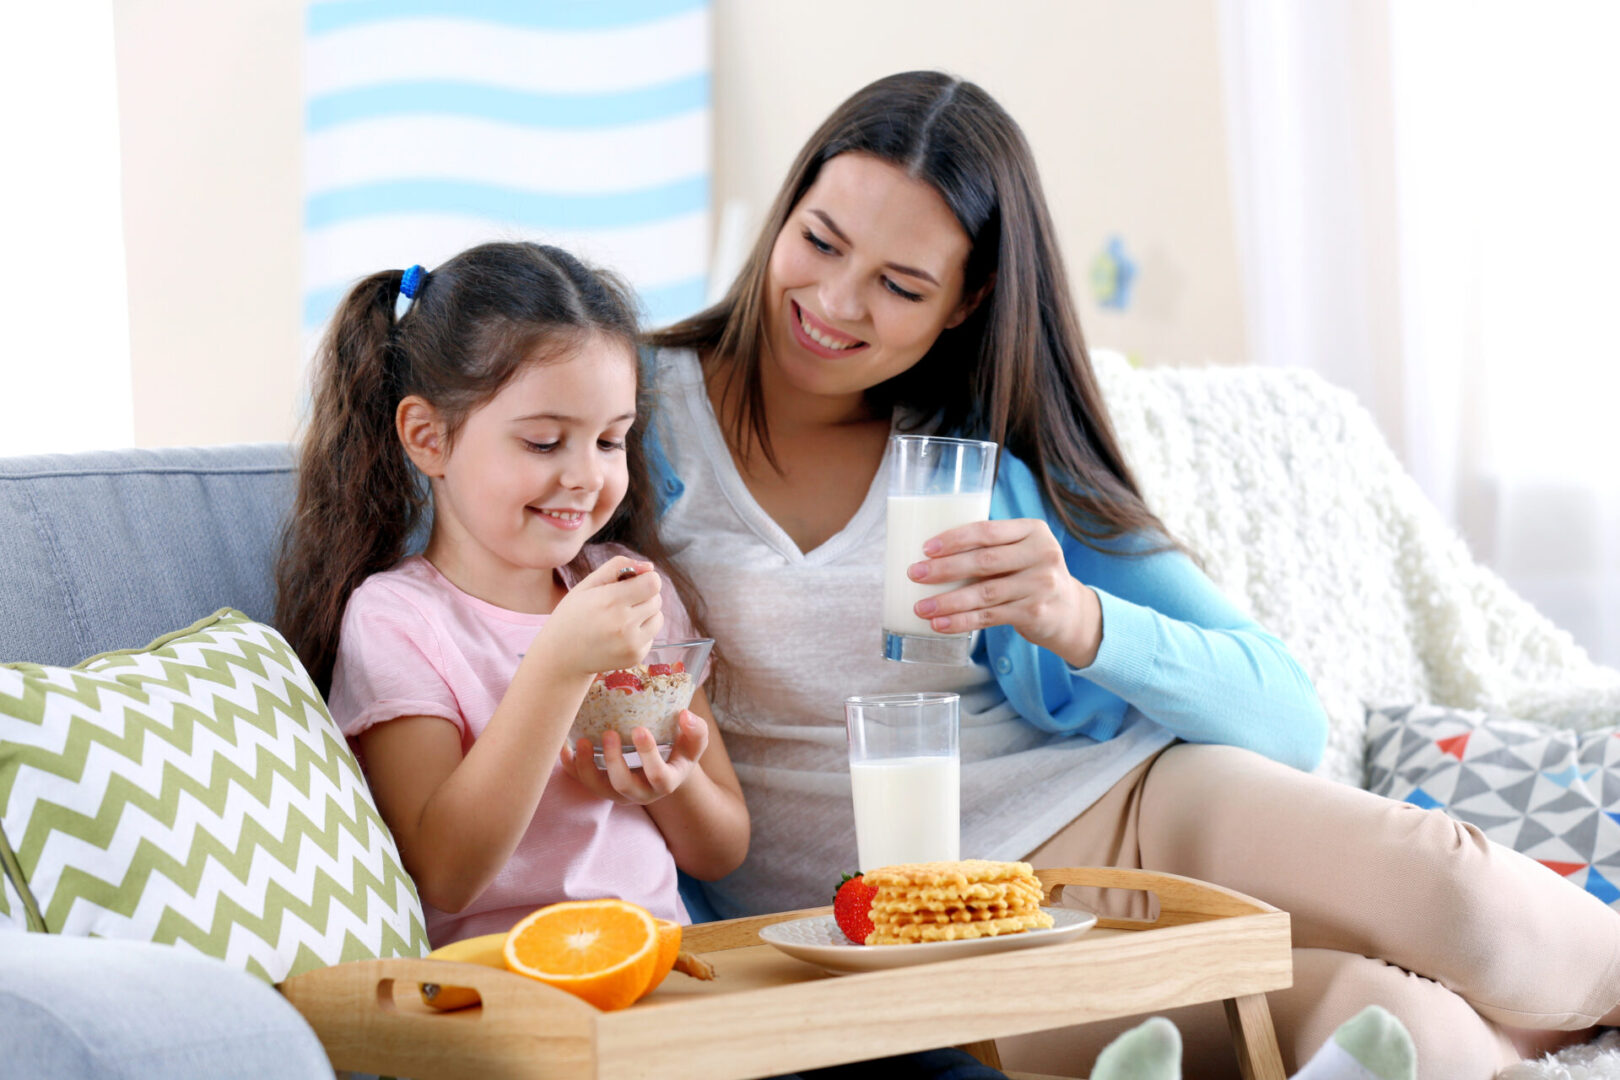 Mother,And,Daughter,Having,Healthy,Breakfast,On,Sofa,In,Room